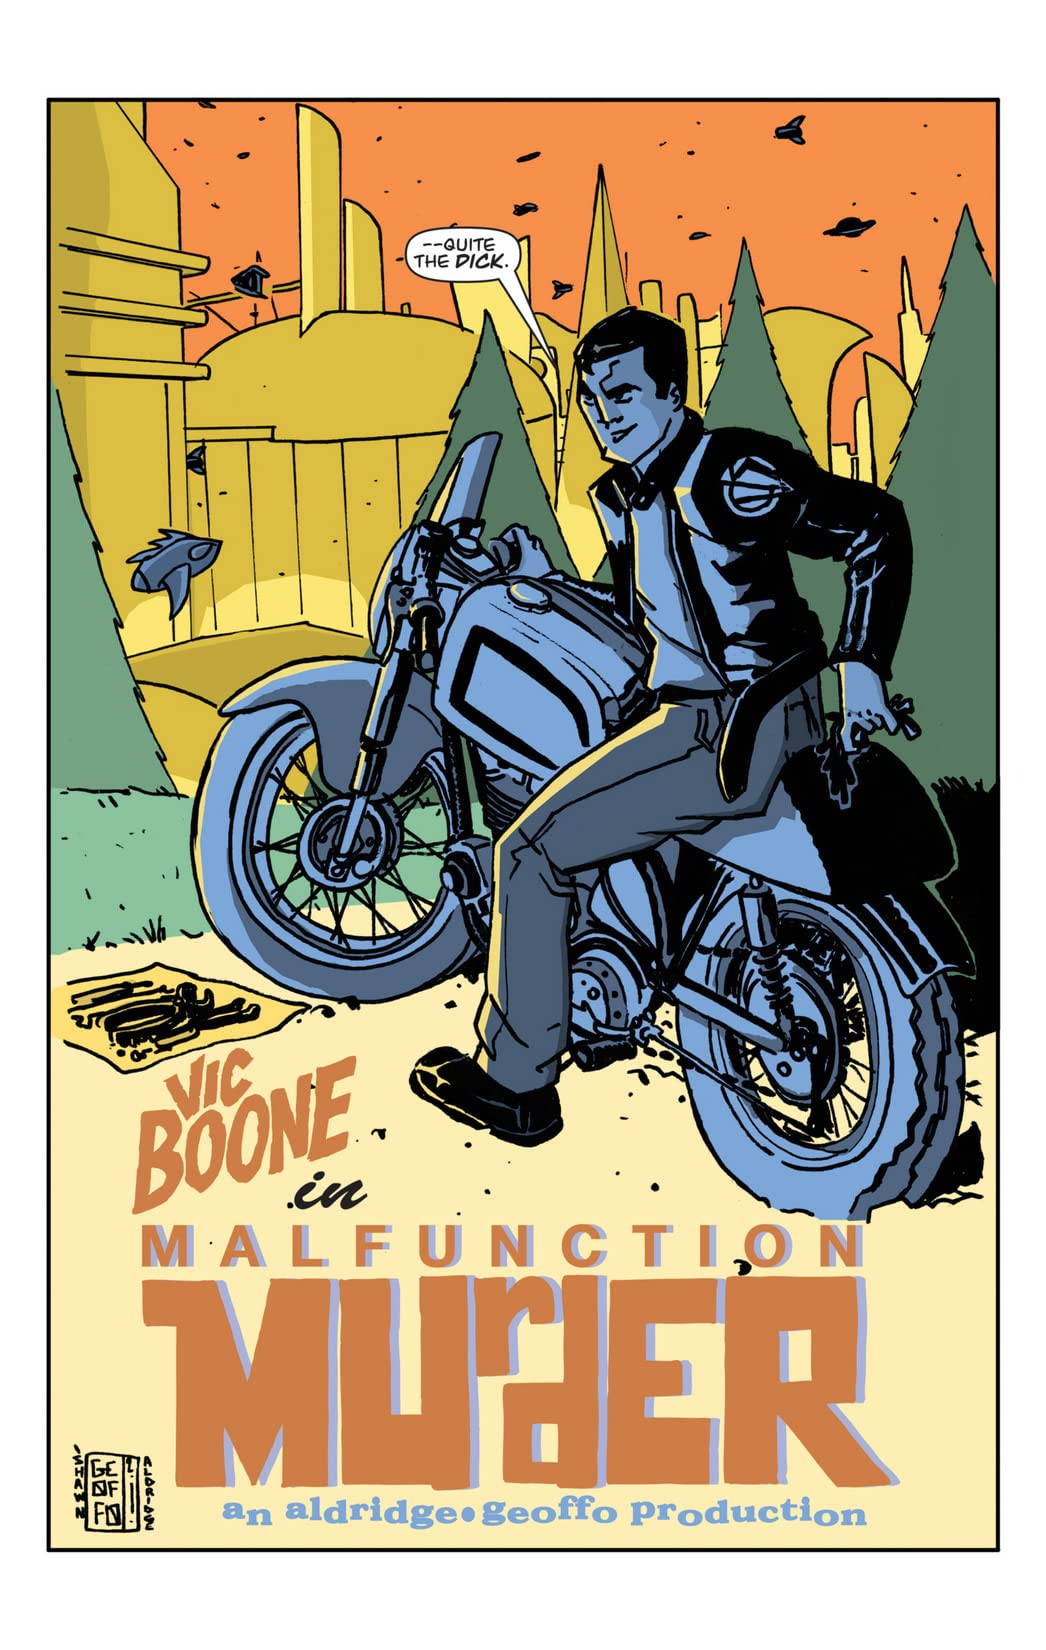 Vic Boone Vol. 1: Malfunction Murder